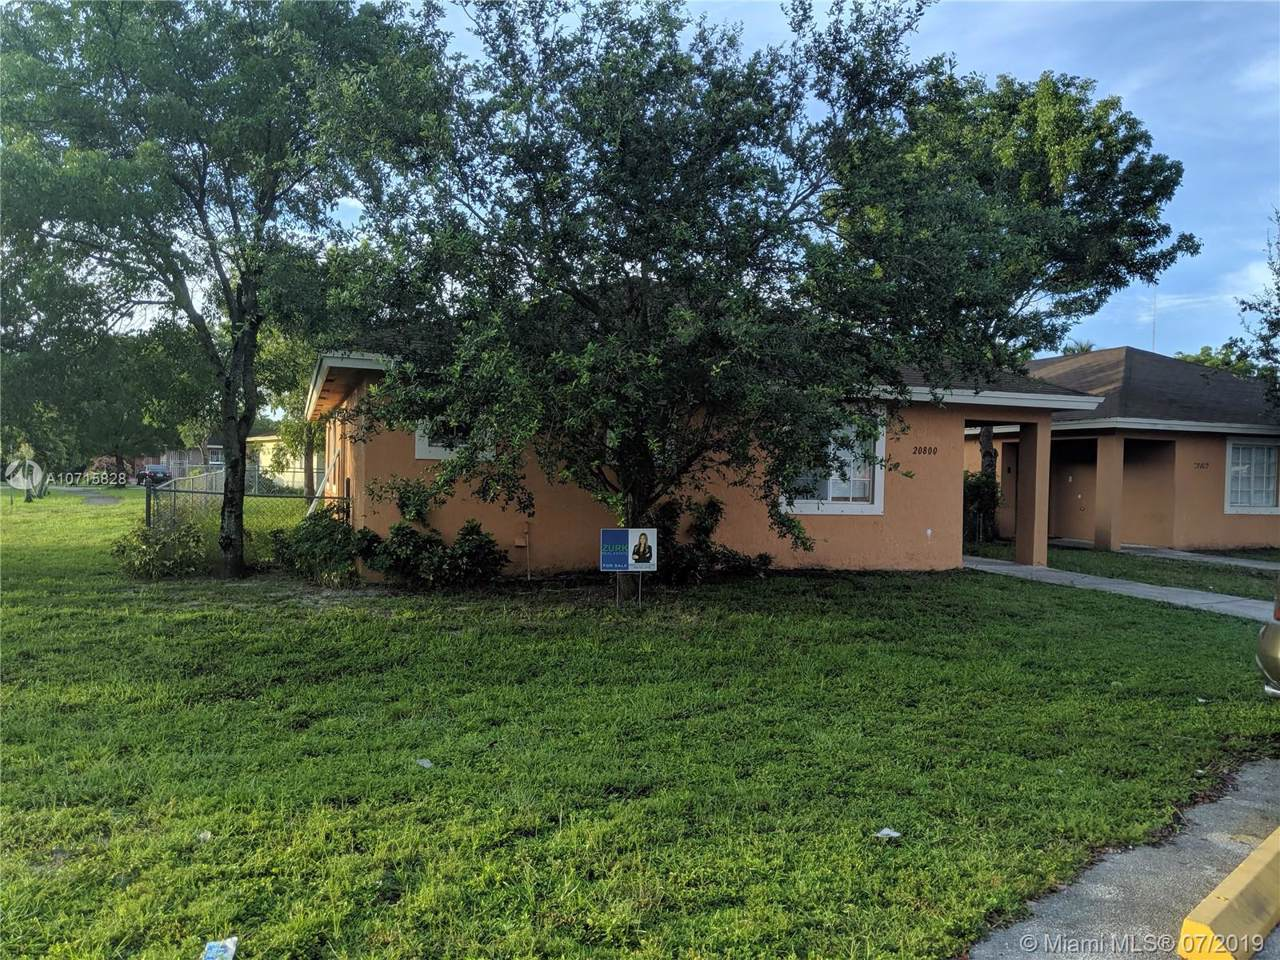 20800 41st Ave Rd - Photo 1